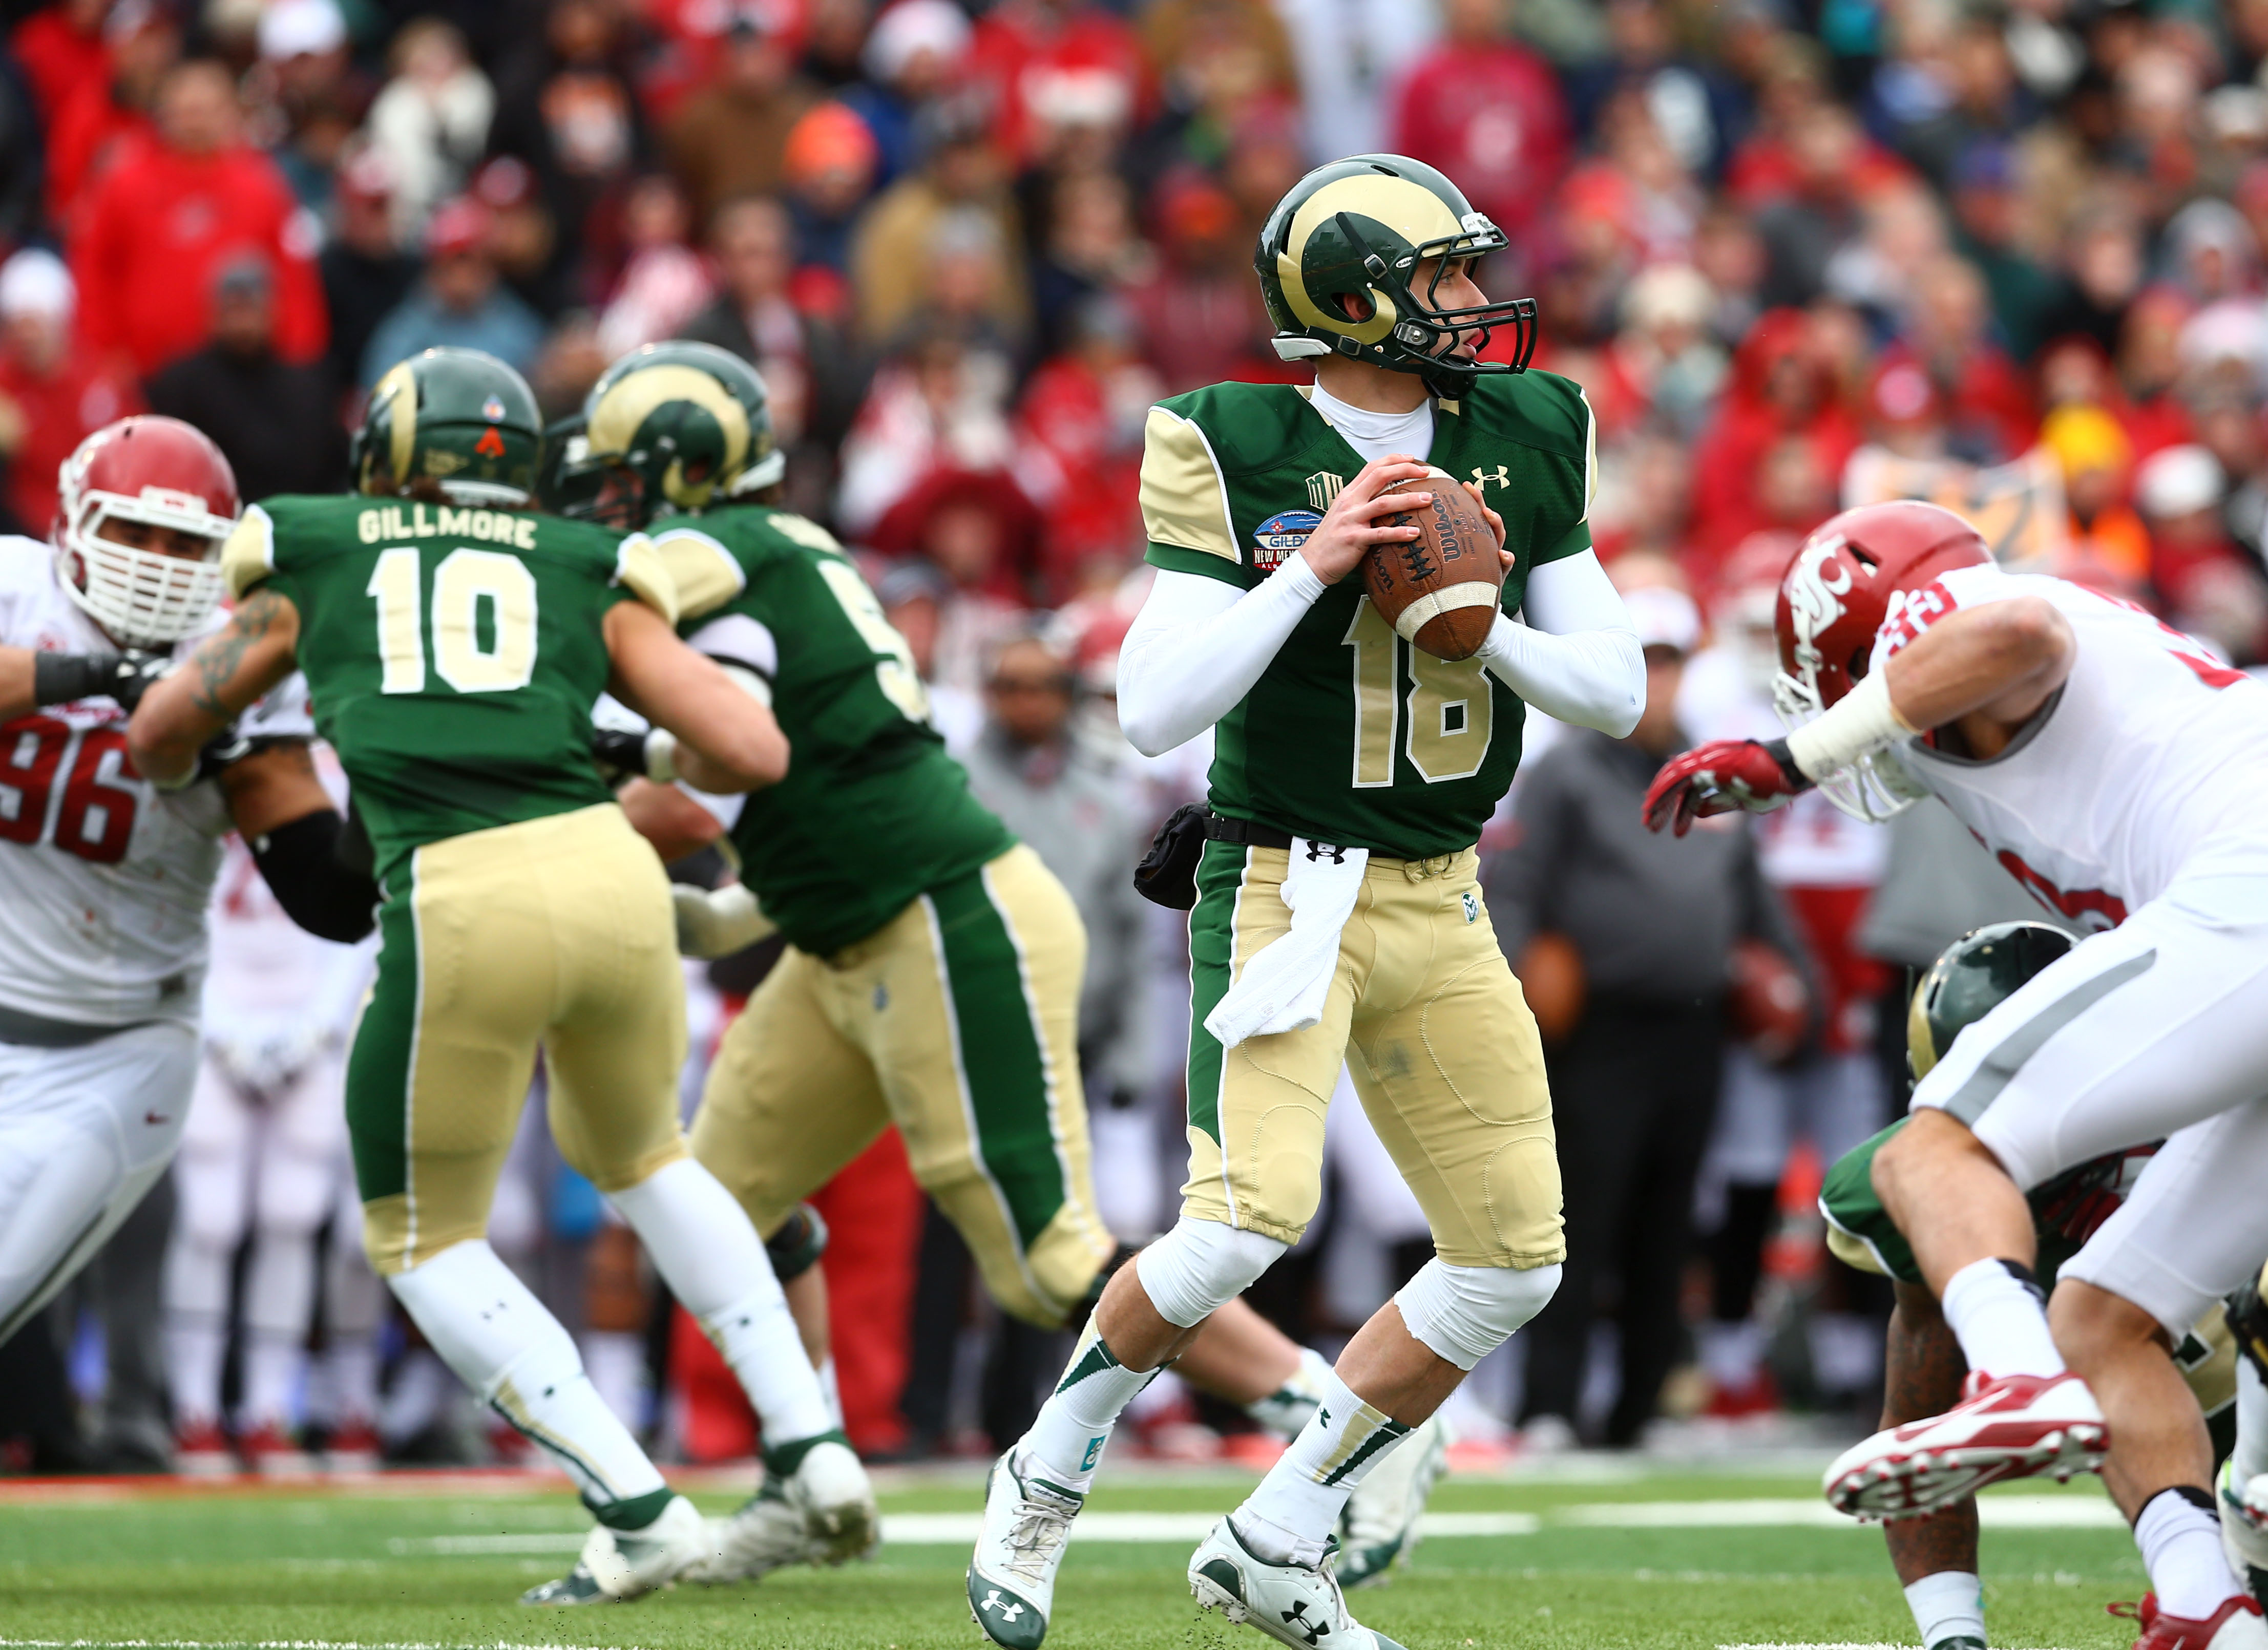 The Royal Purple Las Vegas Bowl will pit No. 22 Utah against old Mountain West Conference foe Colorado State.